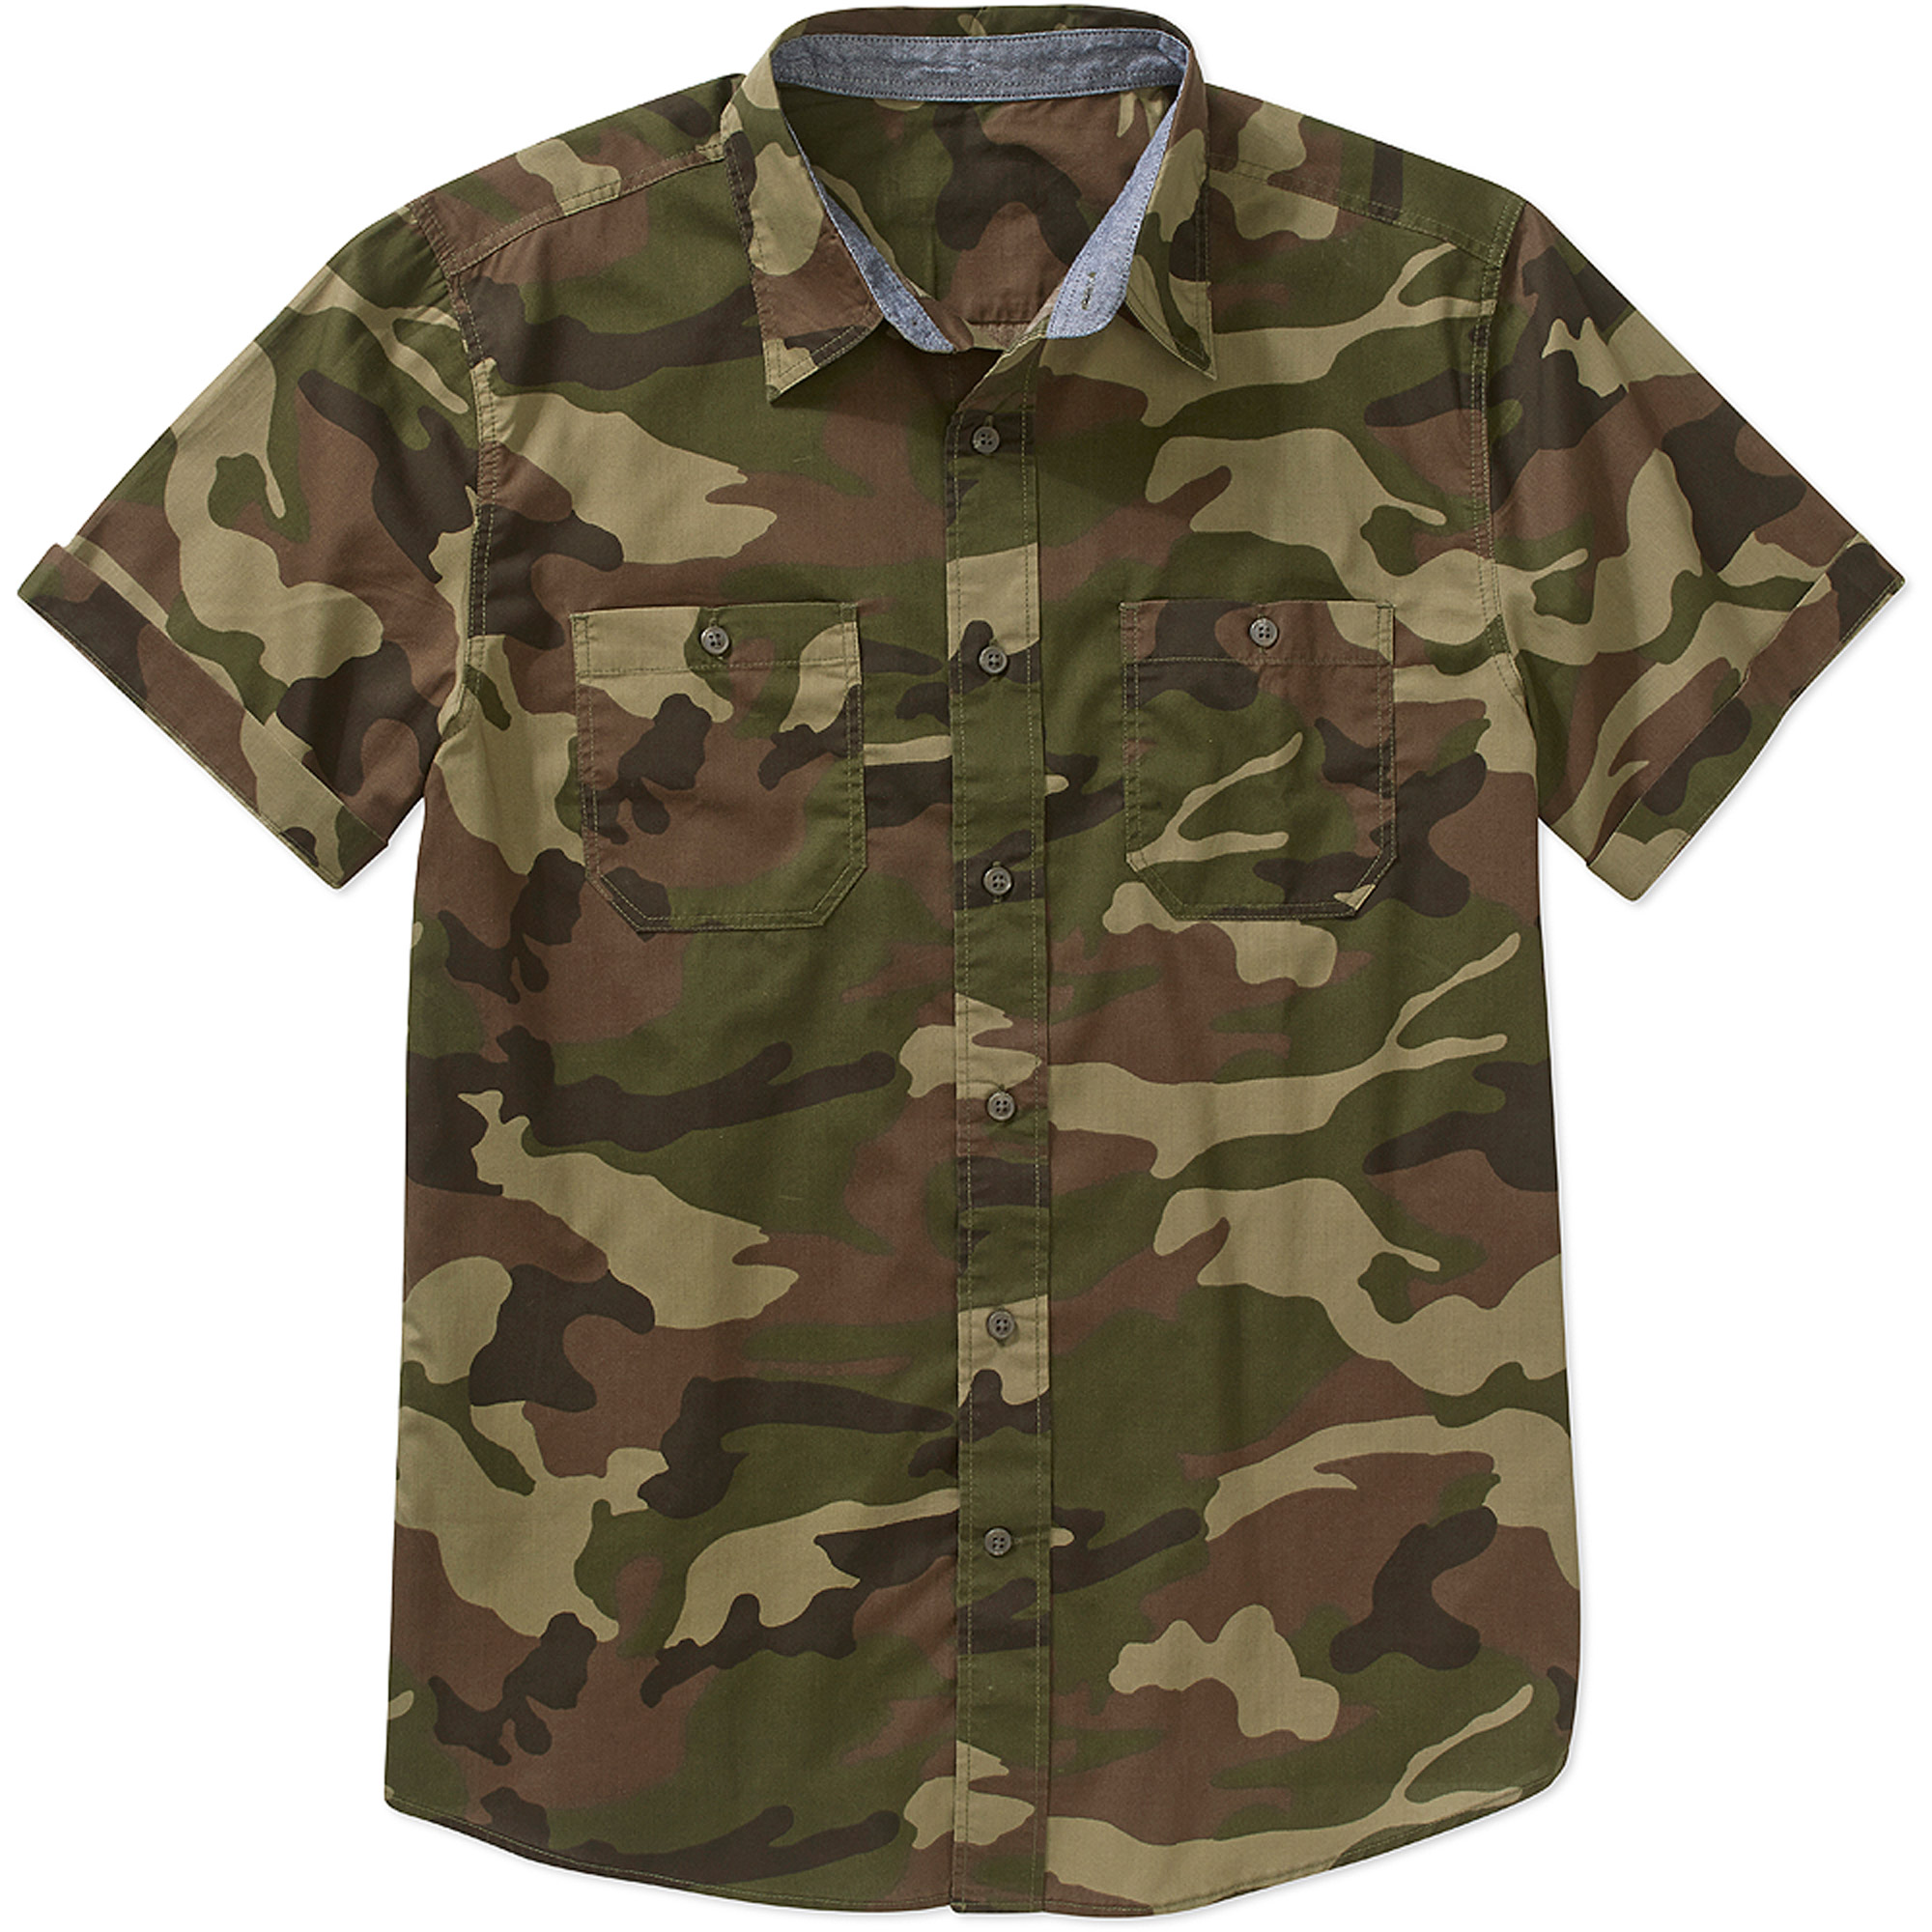 No Boundaries Men's Short Sleeve Shirt